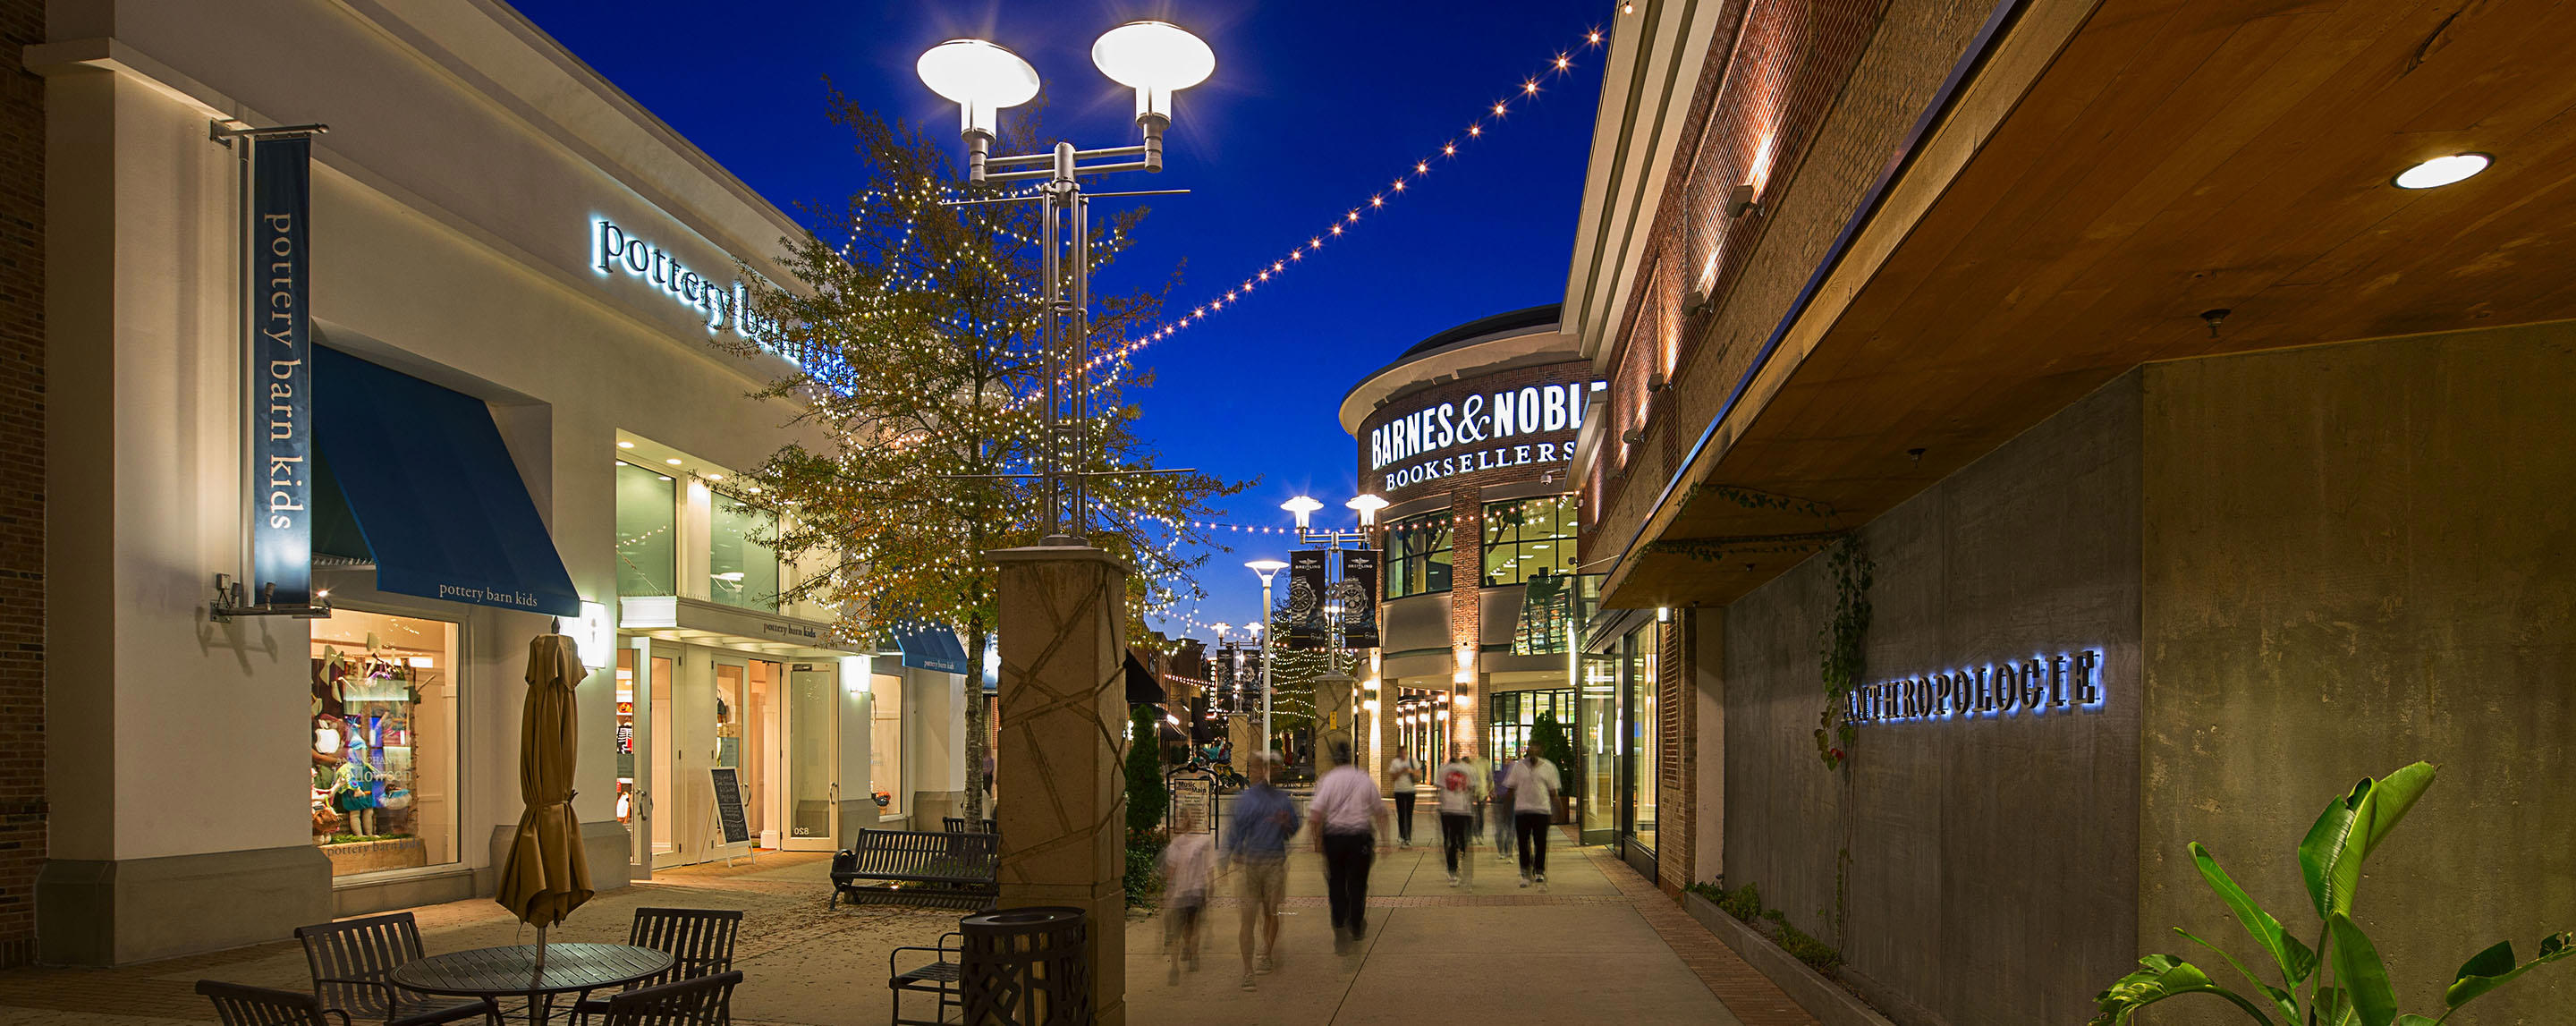 Shoppers stroll along the exterior walkway illuminated by decorative string lights, storefronts and outdoor lamps.